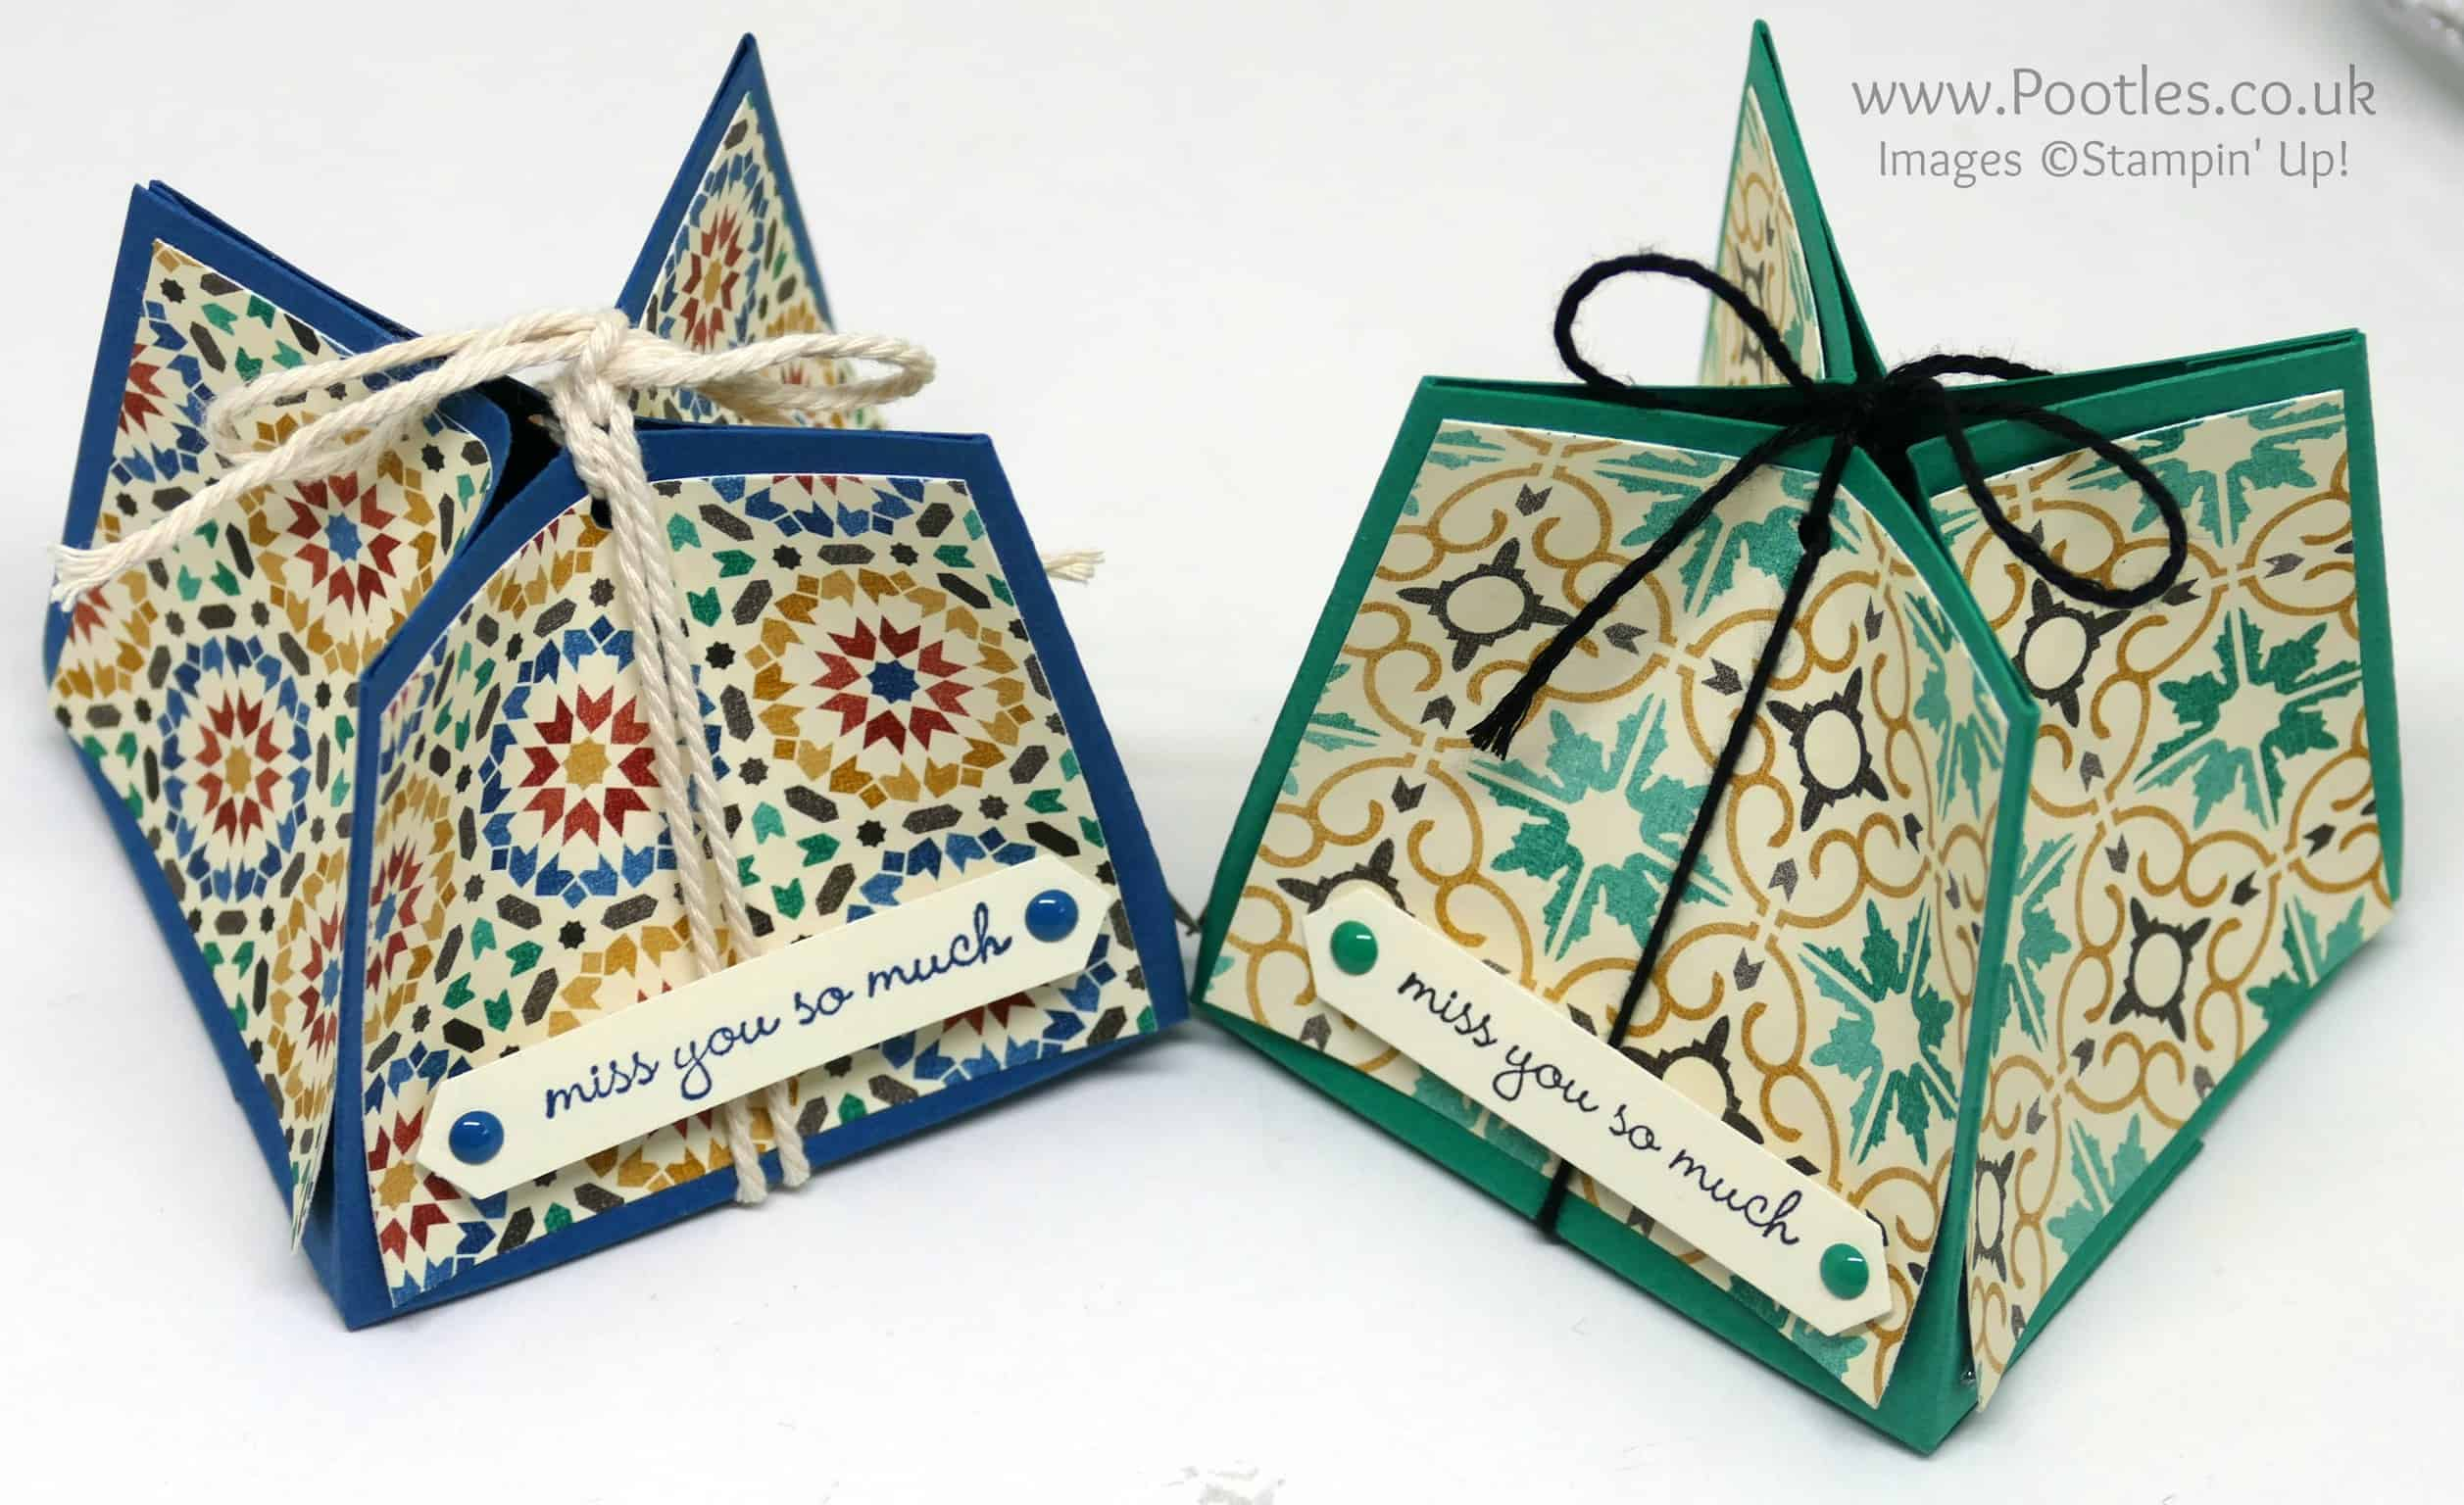 Gorgeous Box using Stampin' Up! Moroccan Paper